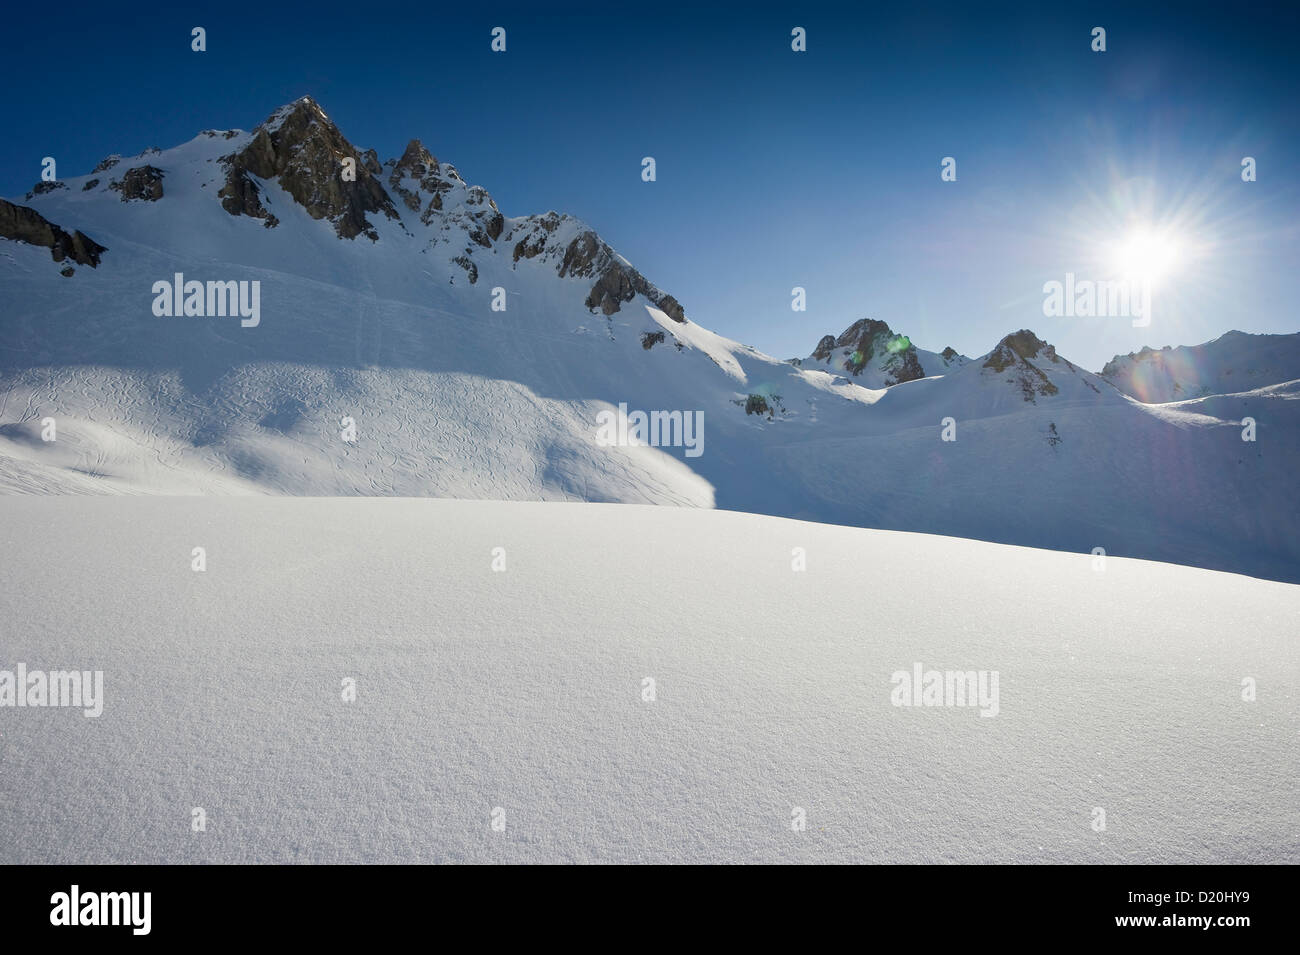 Snow-capped mountain, Tignes, Val d Isere, Savoie department, Rhone-Alpes, France - Stock Image